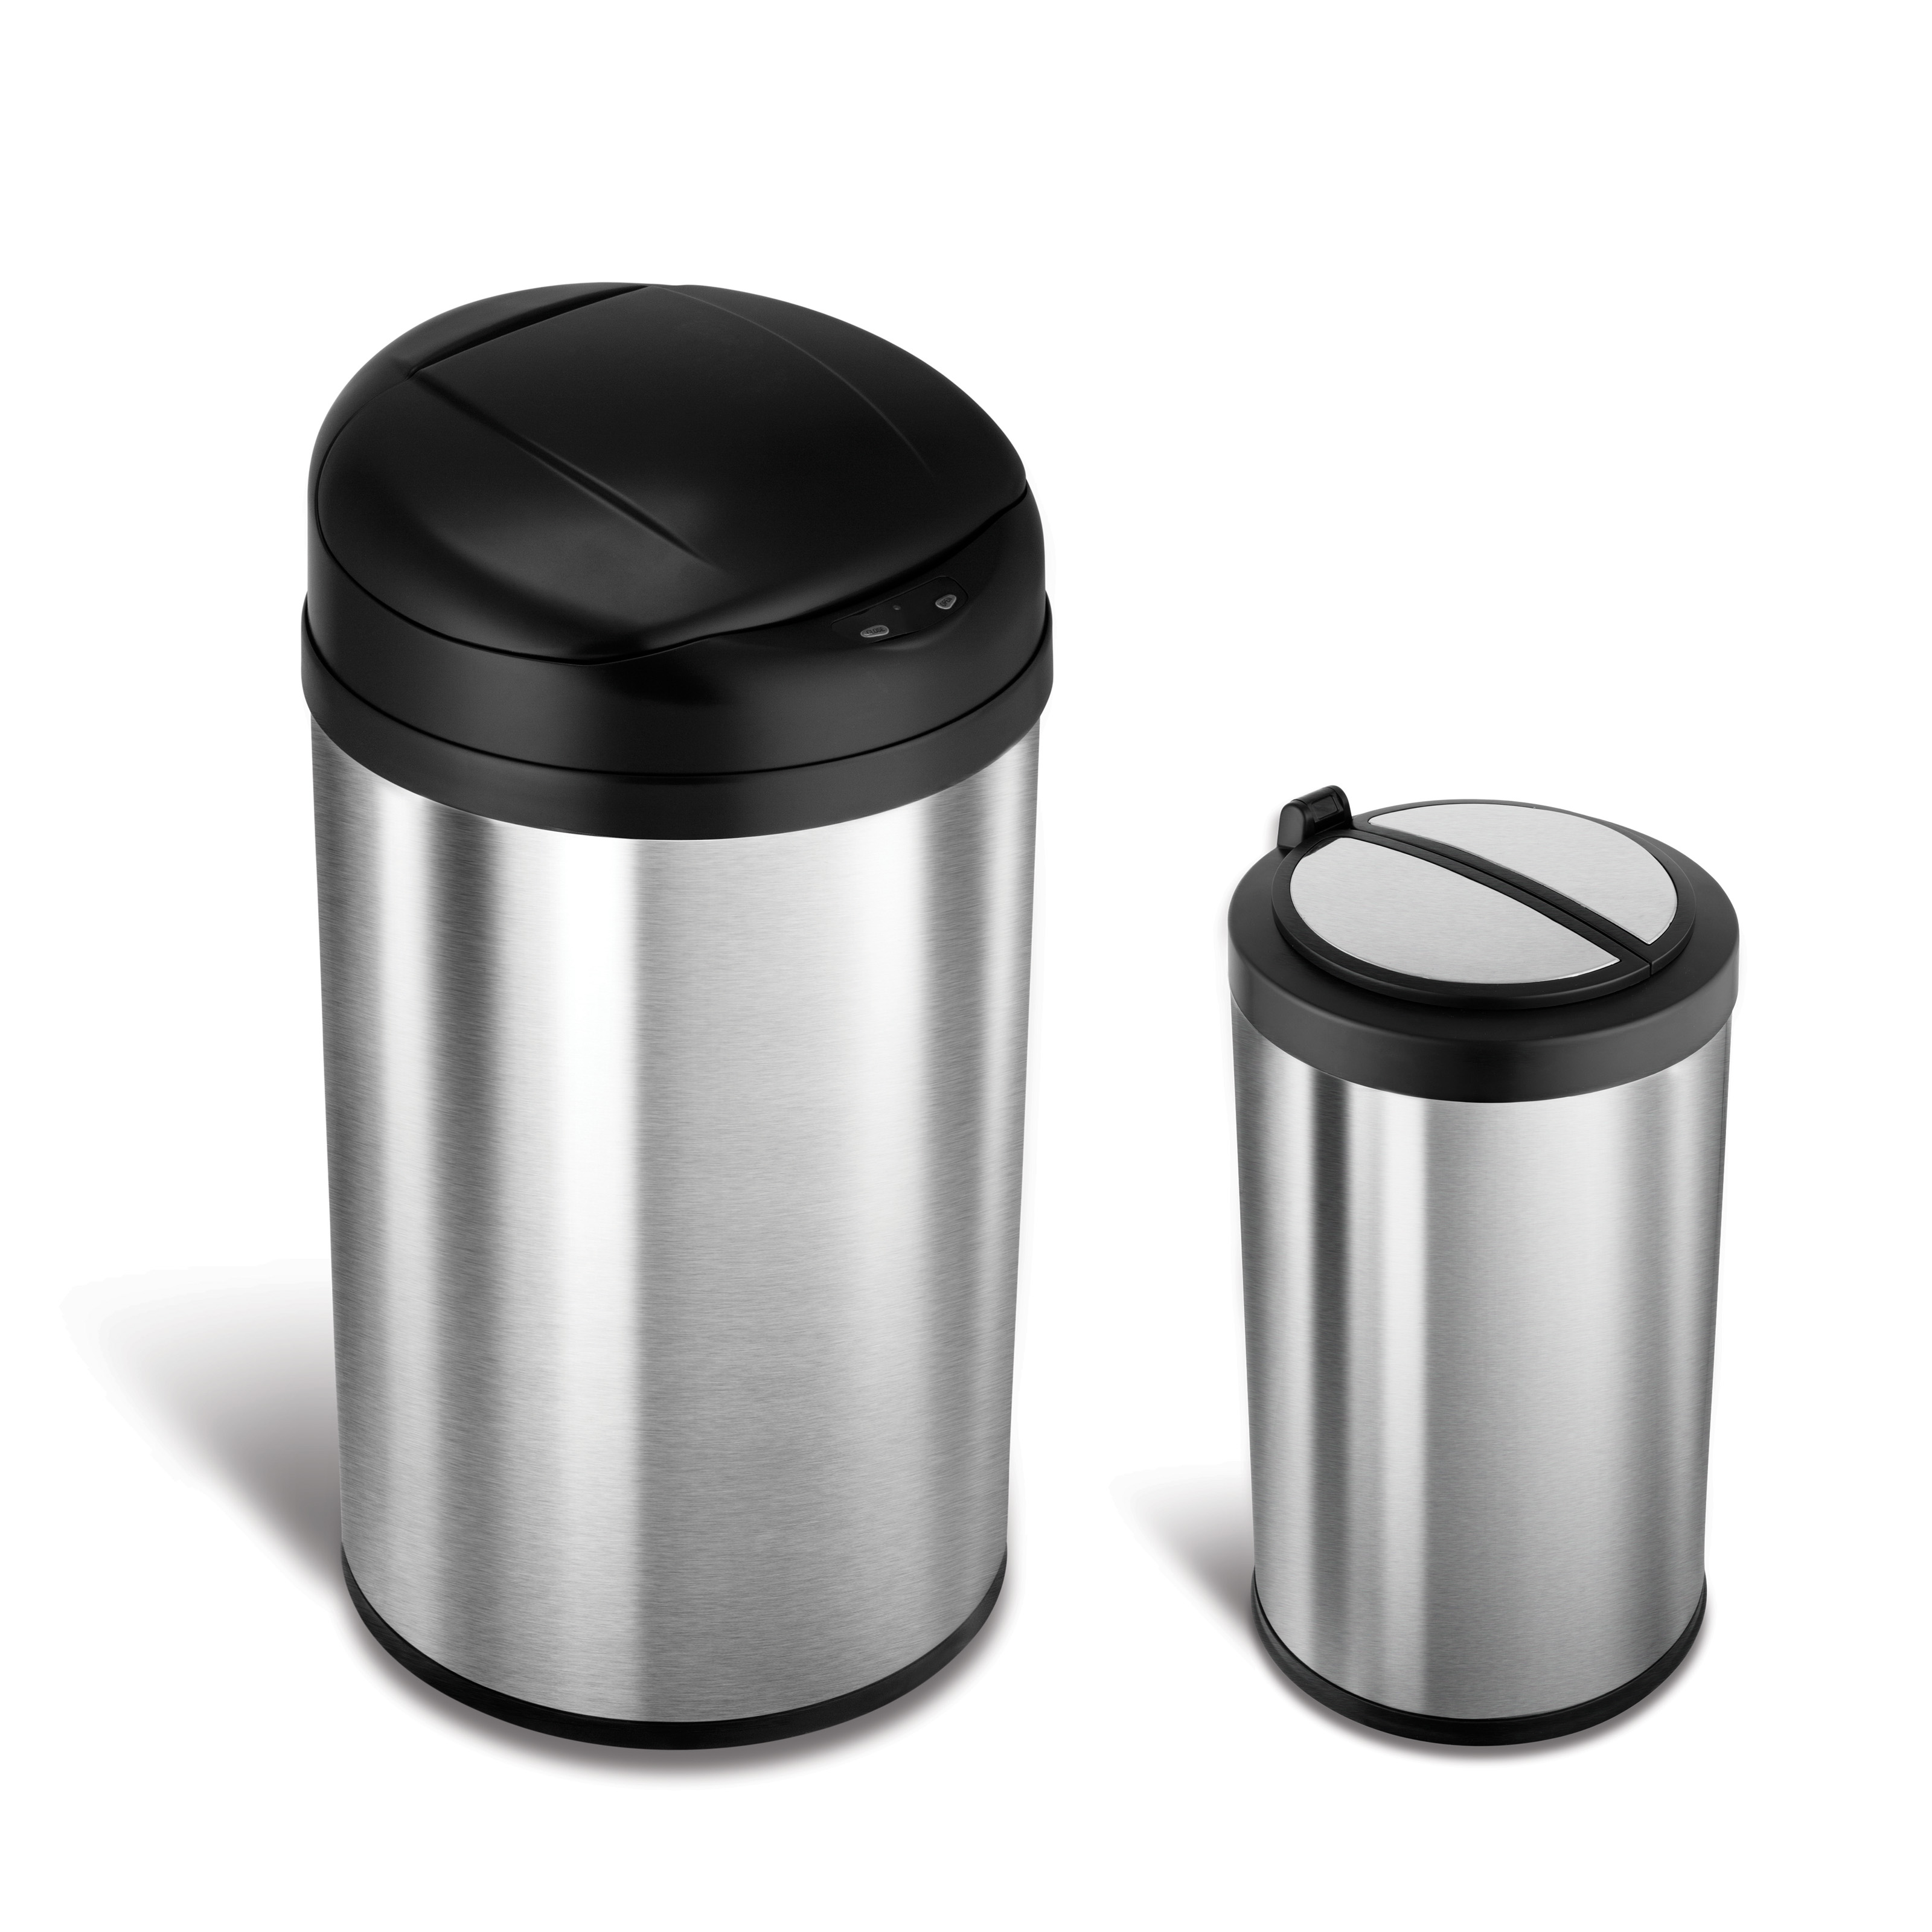 nine stars combo touchless stainless steel 132 and 21 gallon trash can hayneedle